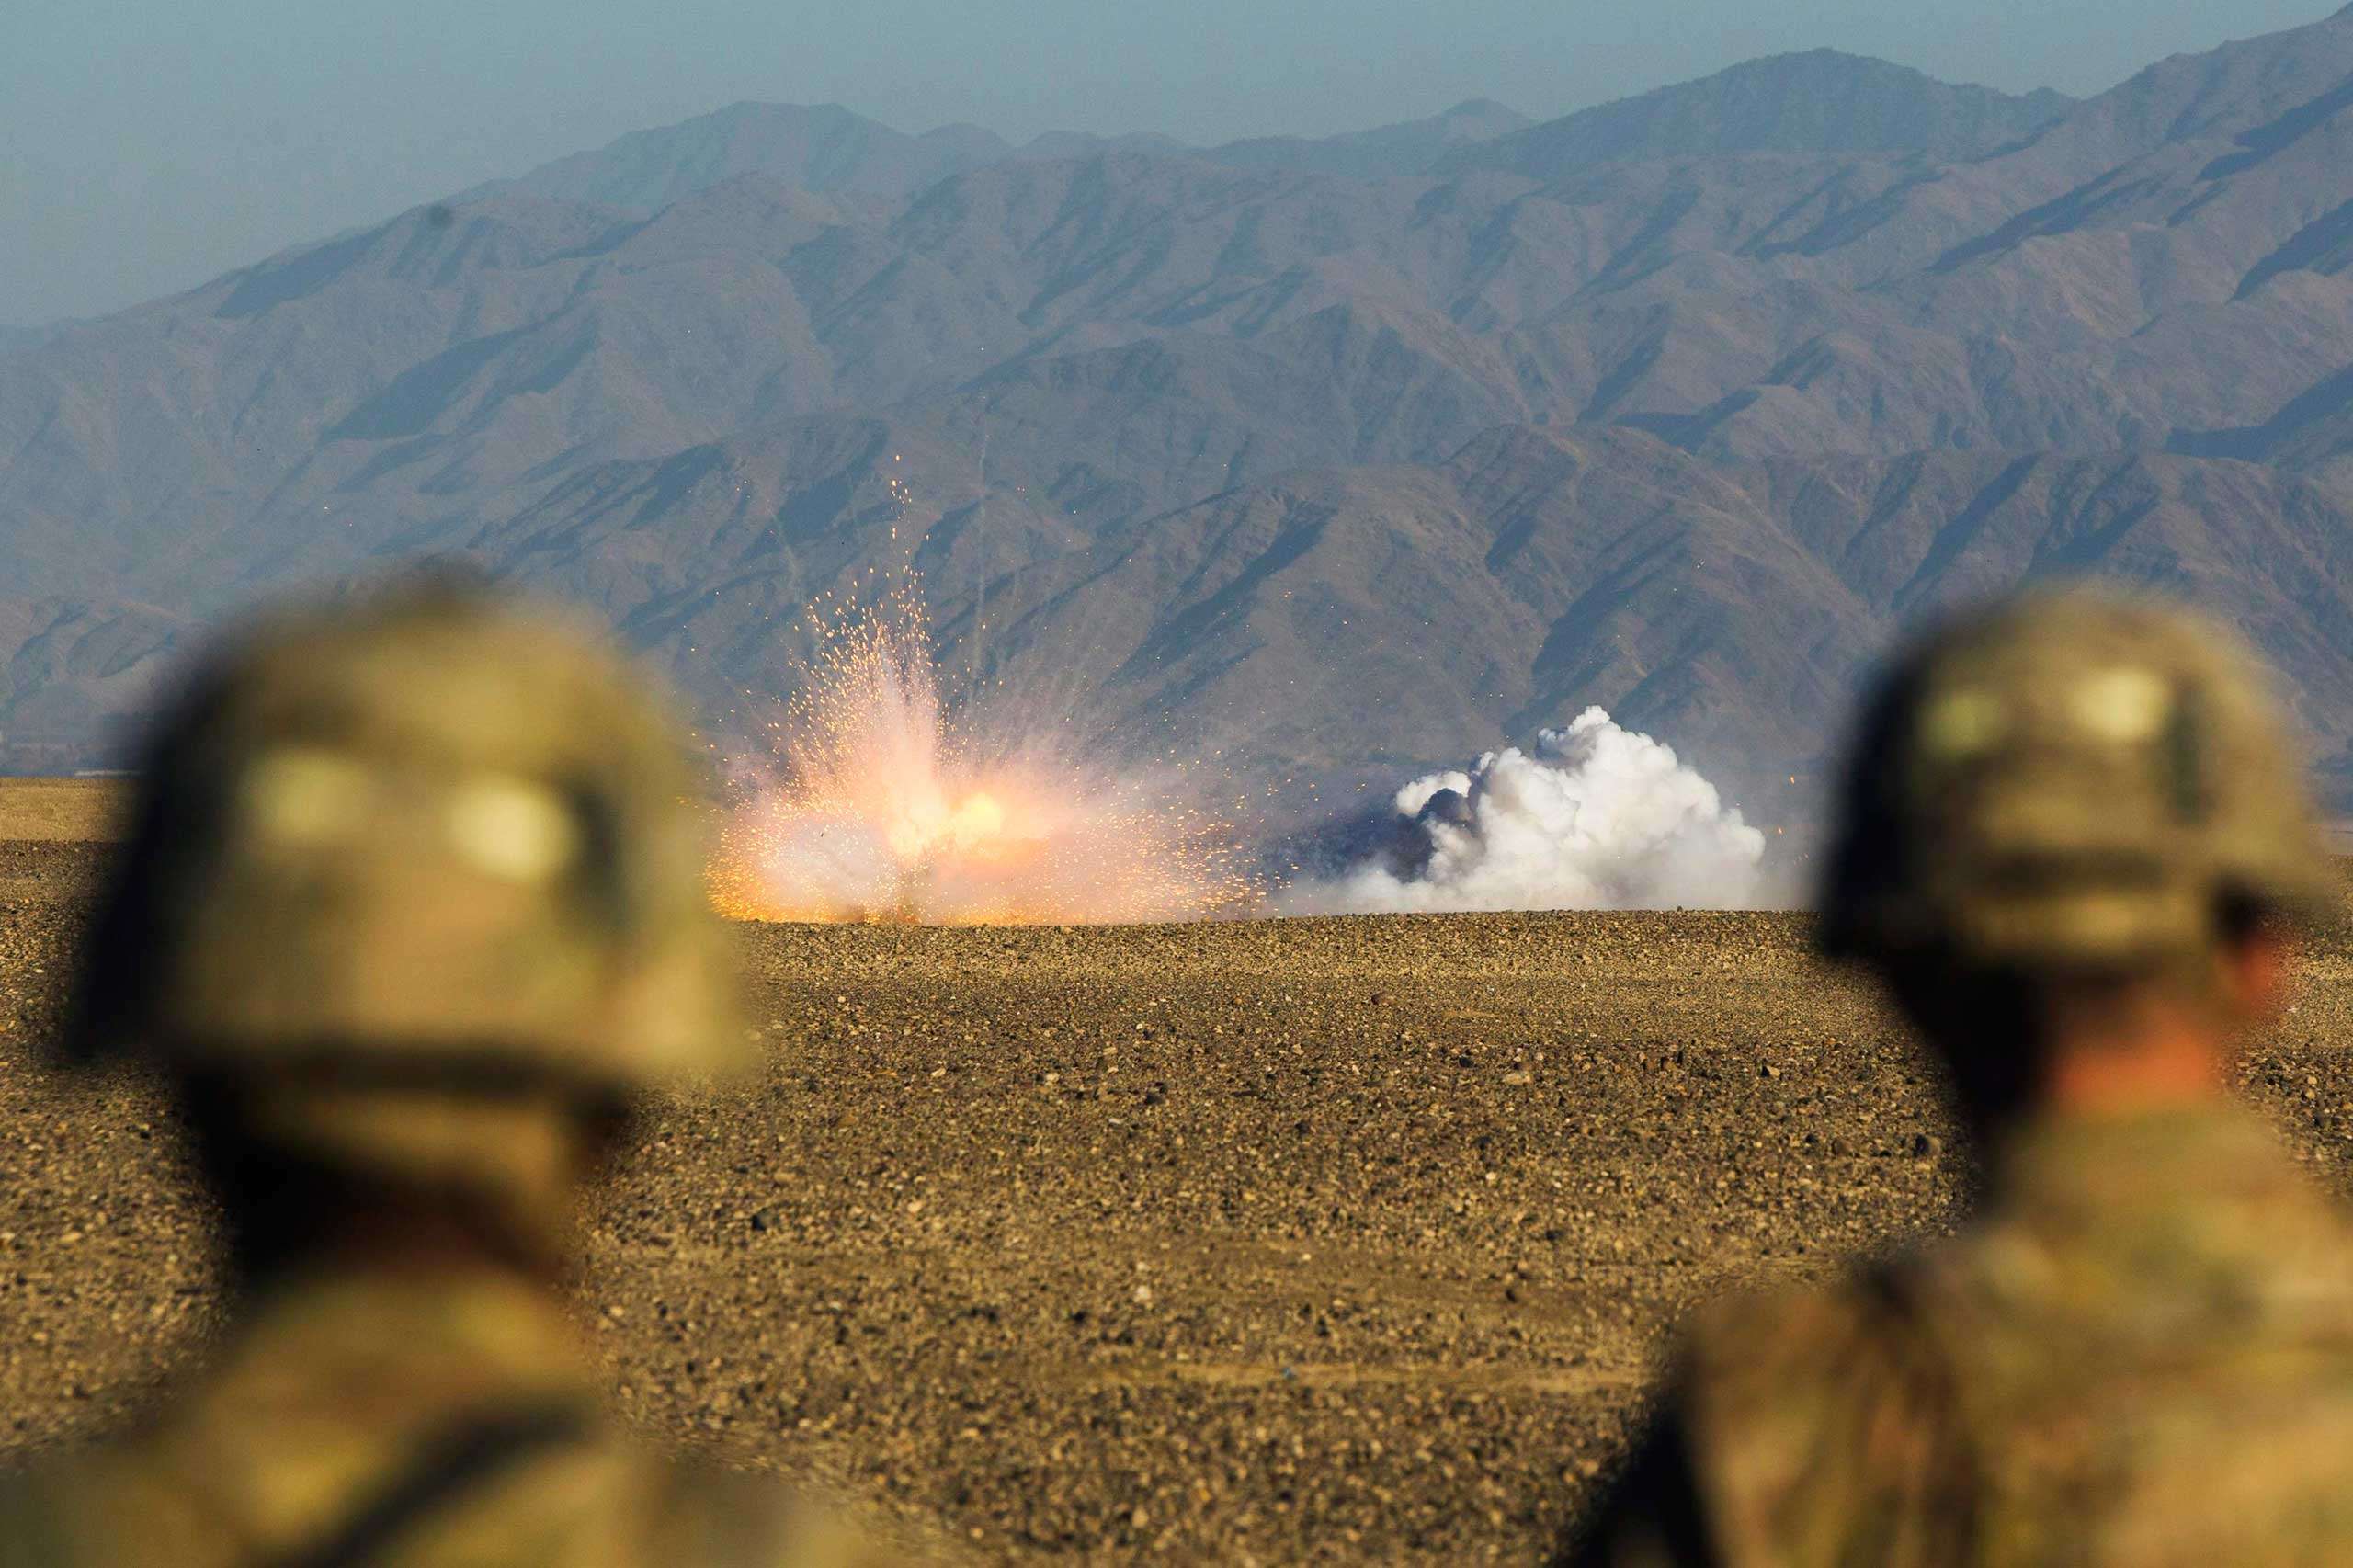 U.S. soldiers in Dragon Company of the 3rd Cavalry Regiment watch rounds explode downrange during a mortar exercise near forward operating base Gamberi in the Laghman province of Afghanistan on Dec. 26, 2014.